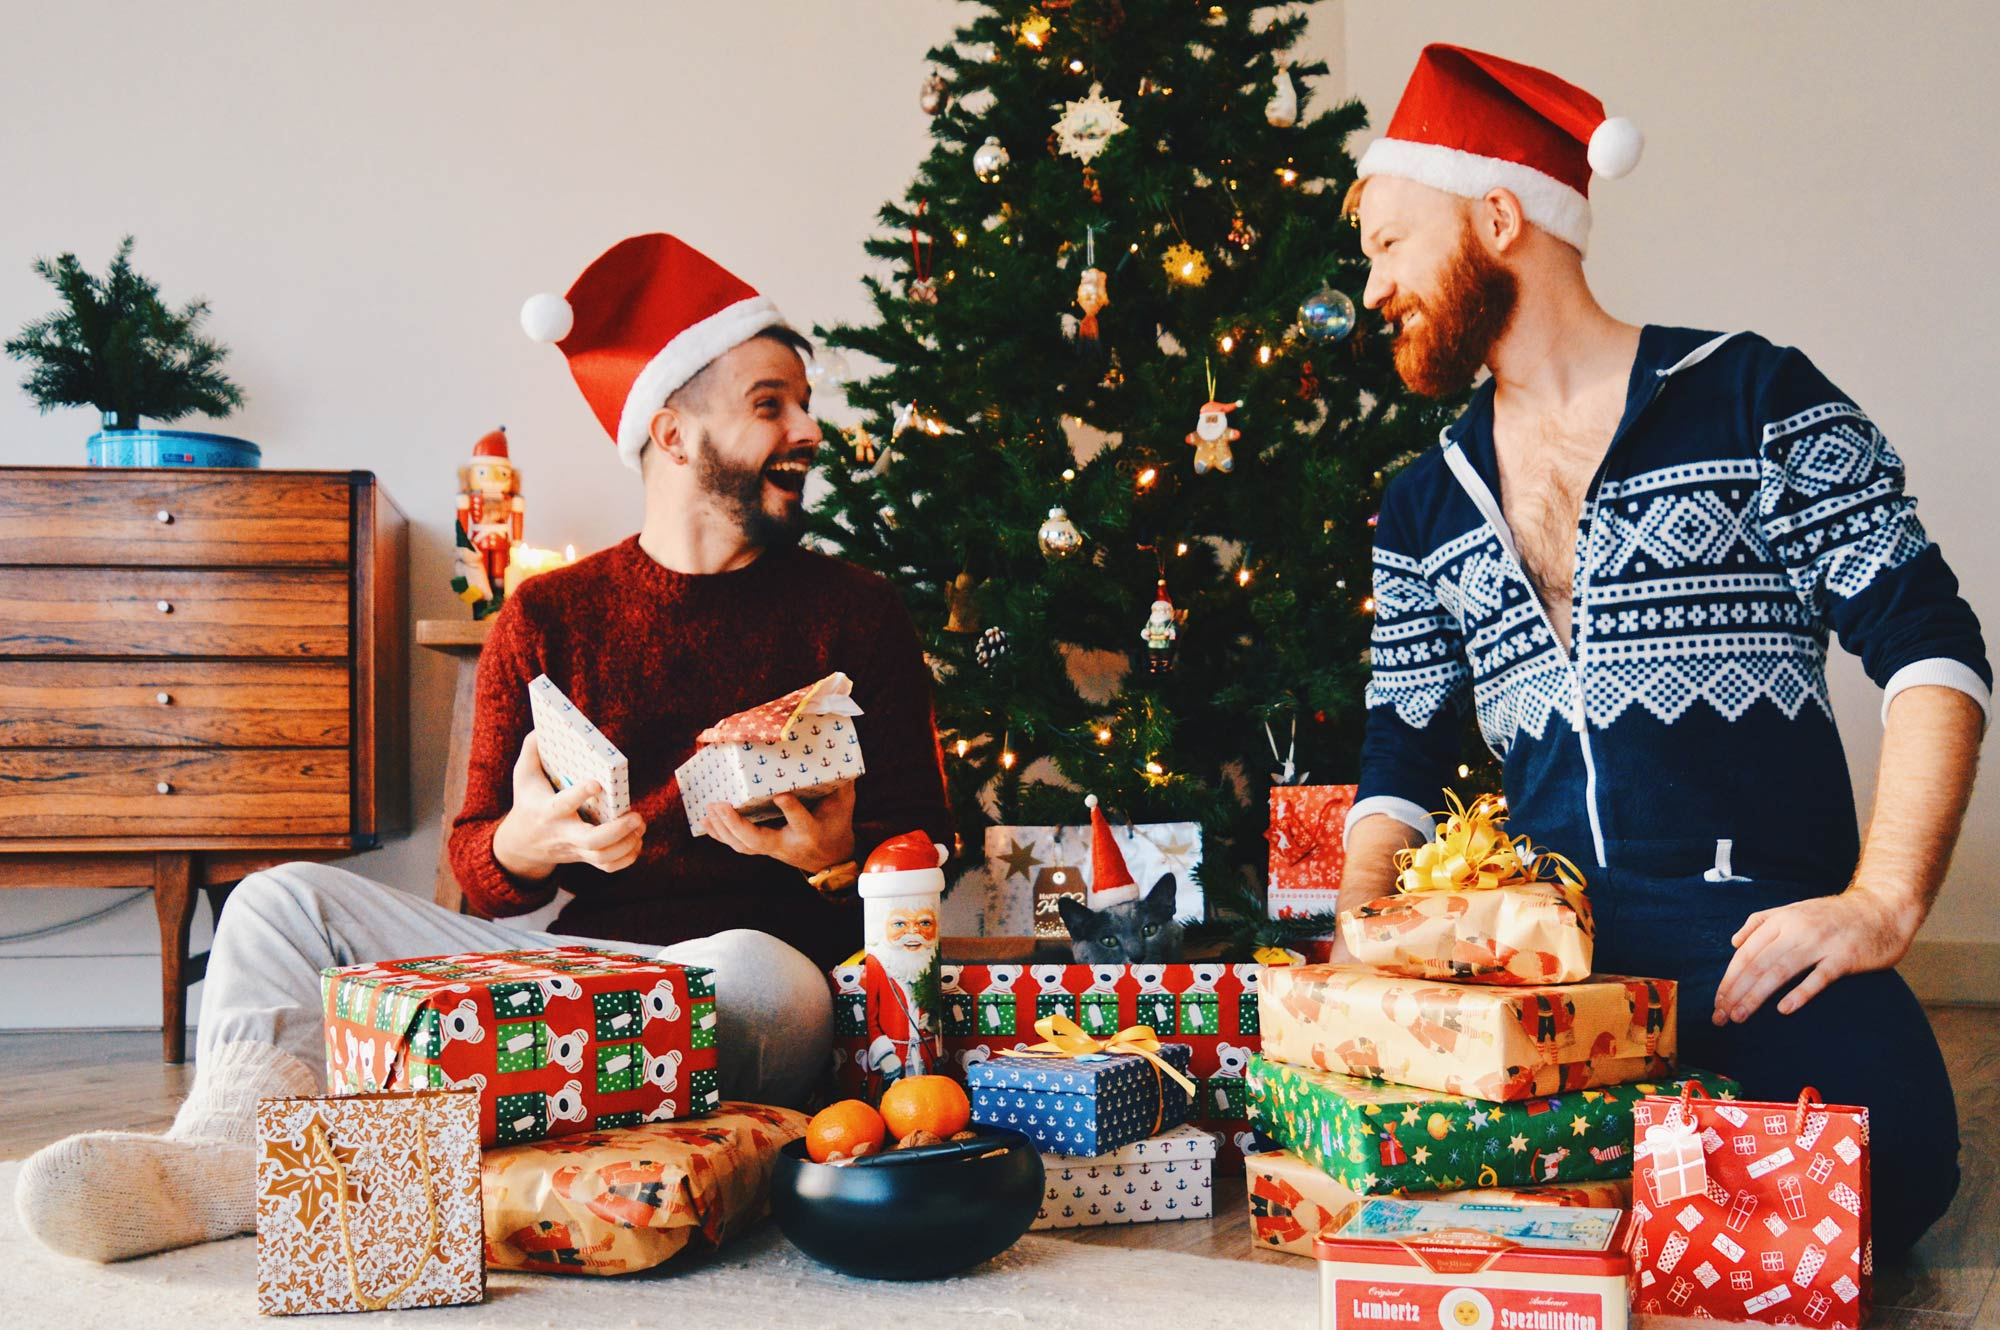 Gay Traveler Christmas Gift Ideas © CoupleofMen.com